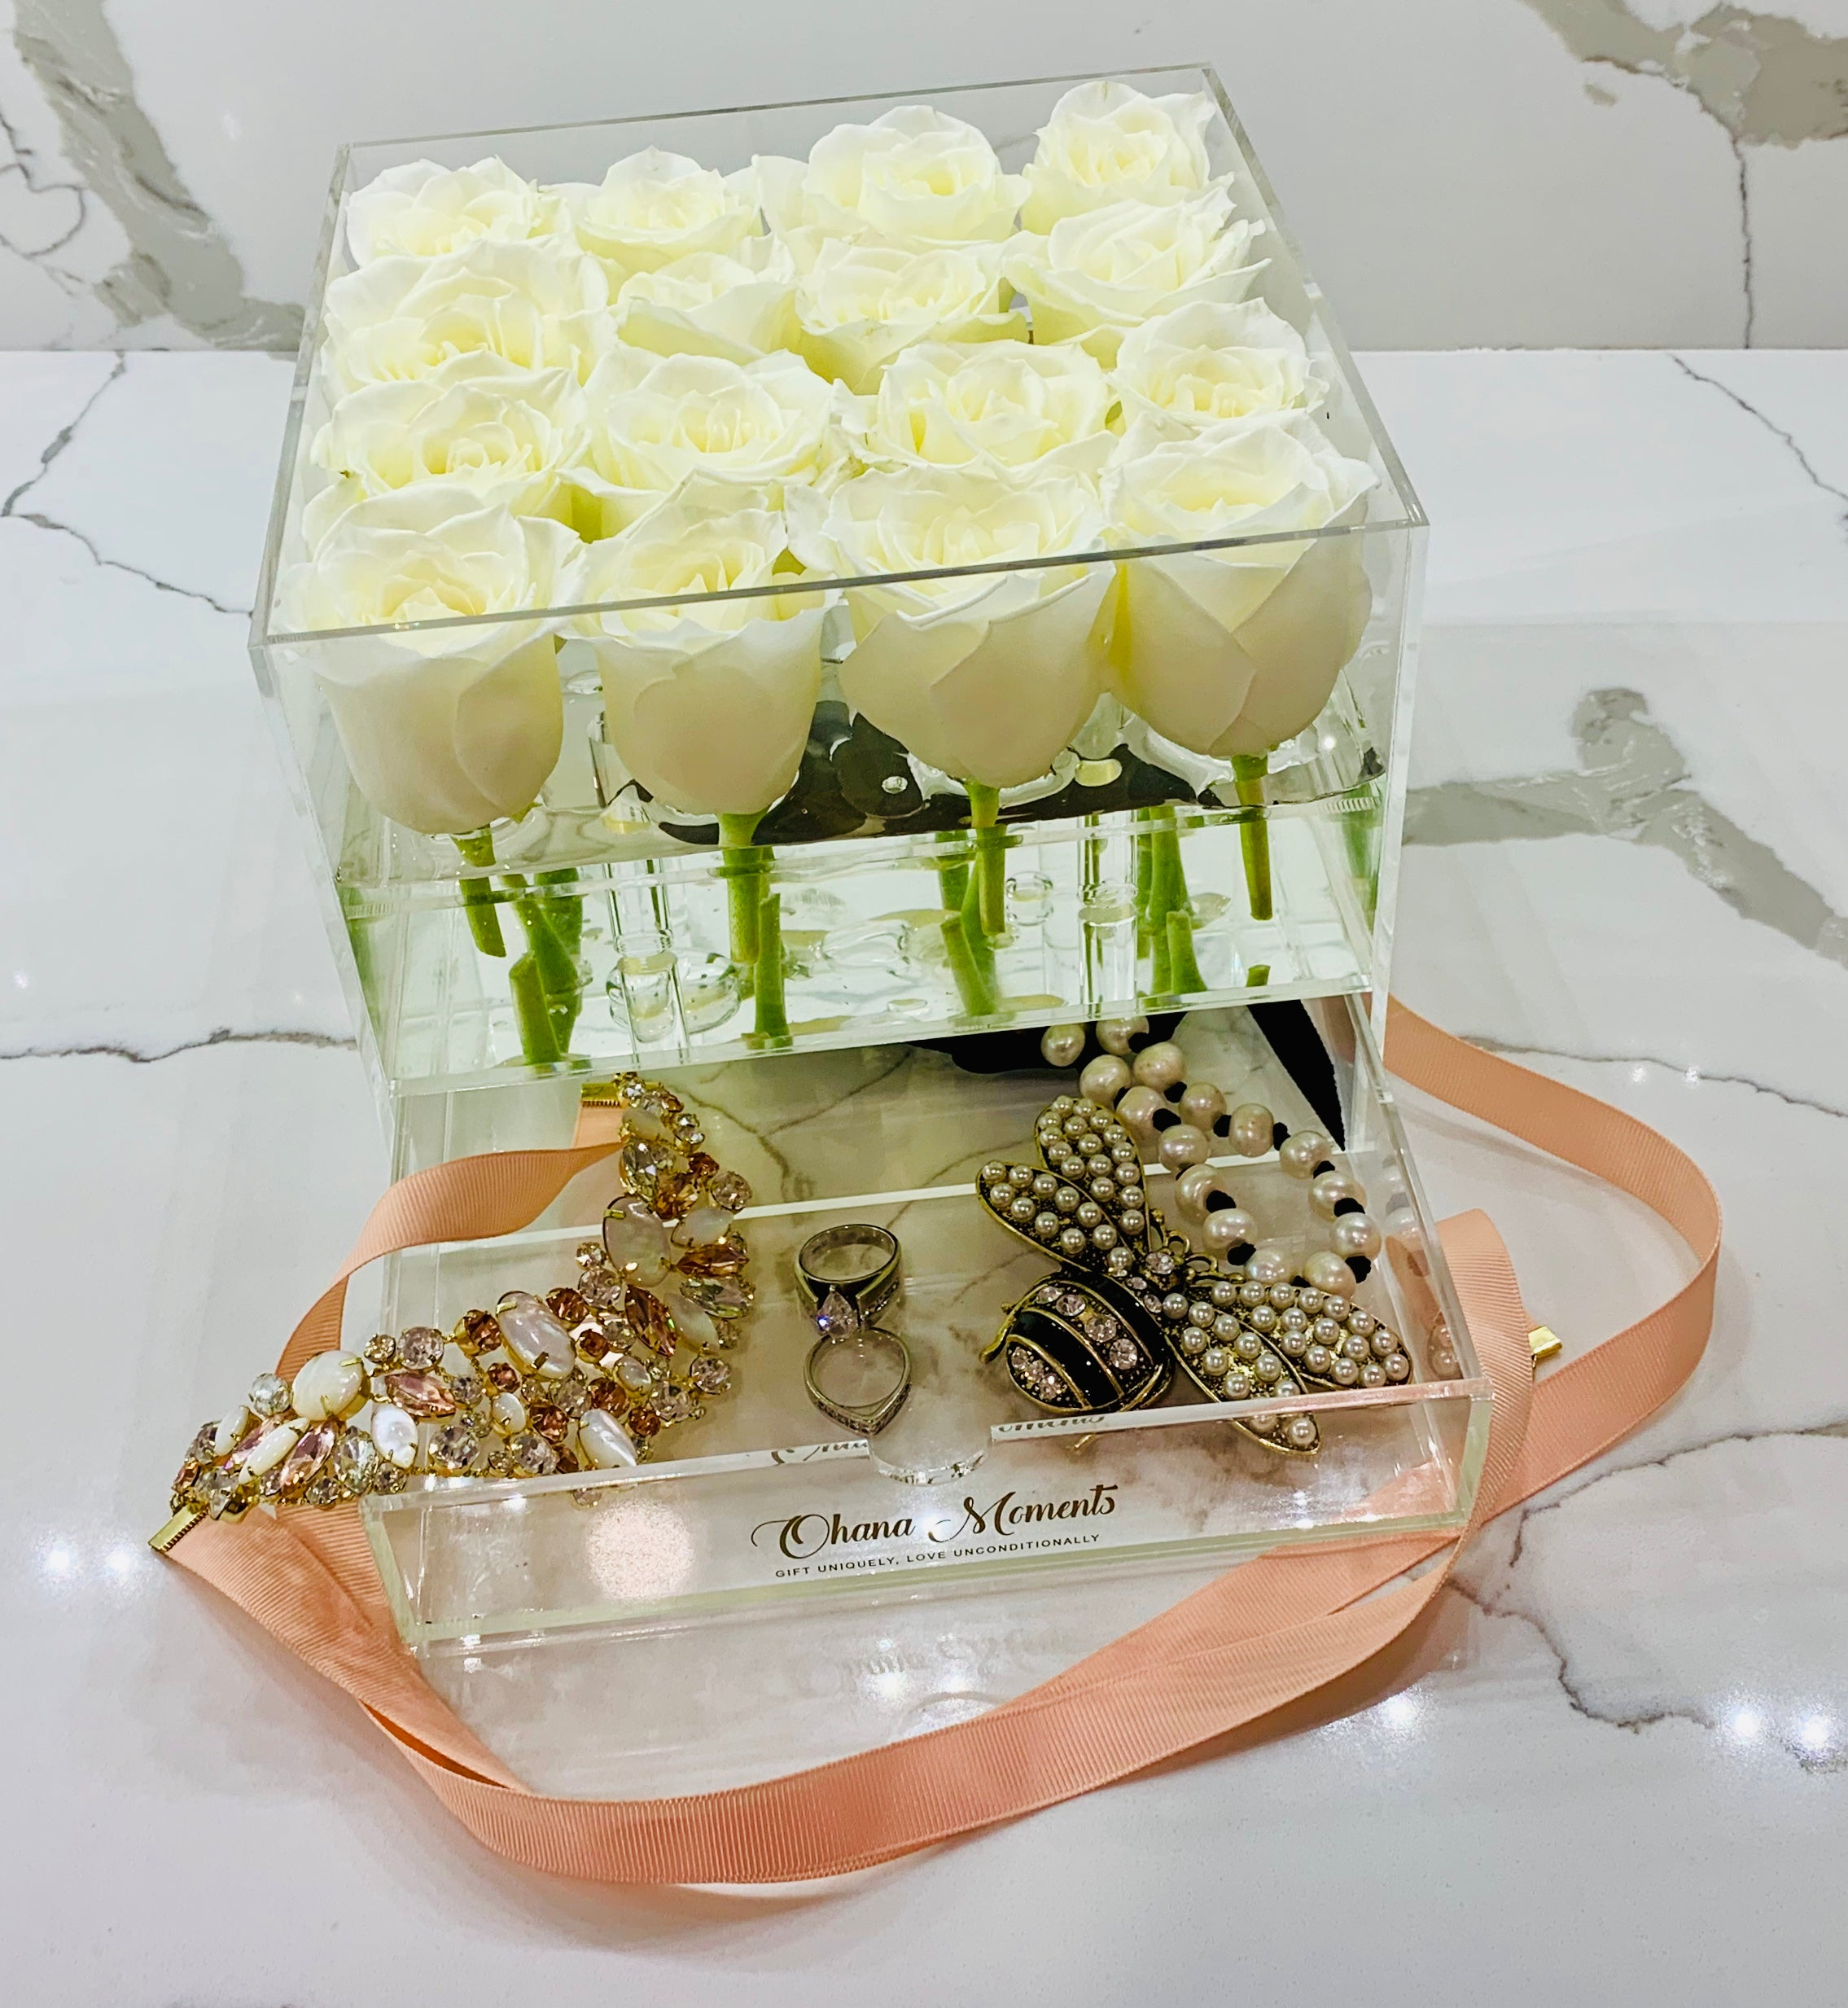 BUILD YOUR OWN FRESH ROSE BOX: Elle Box - Solid